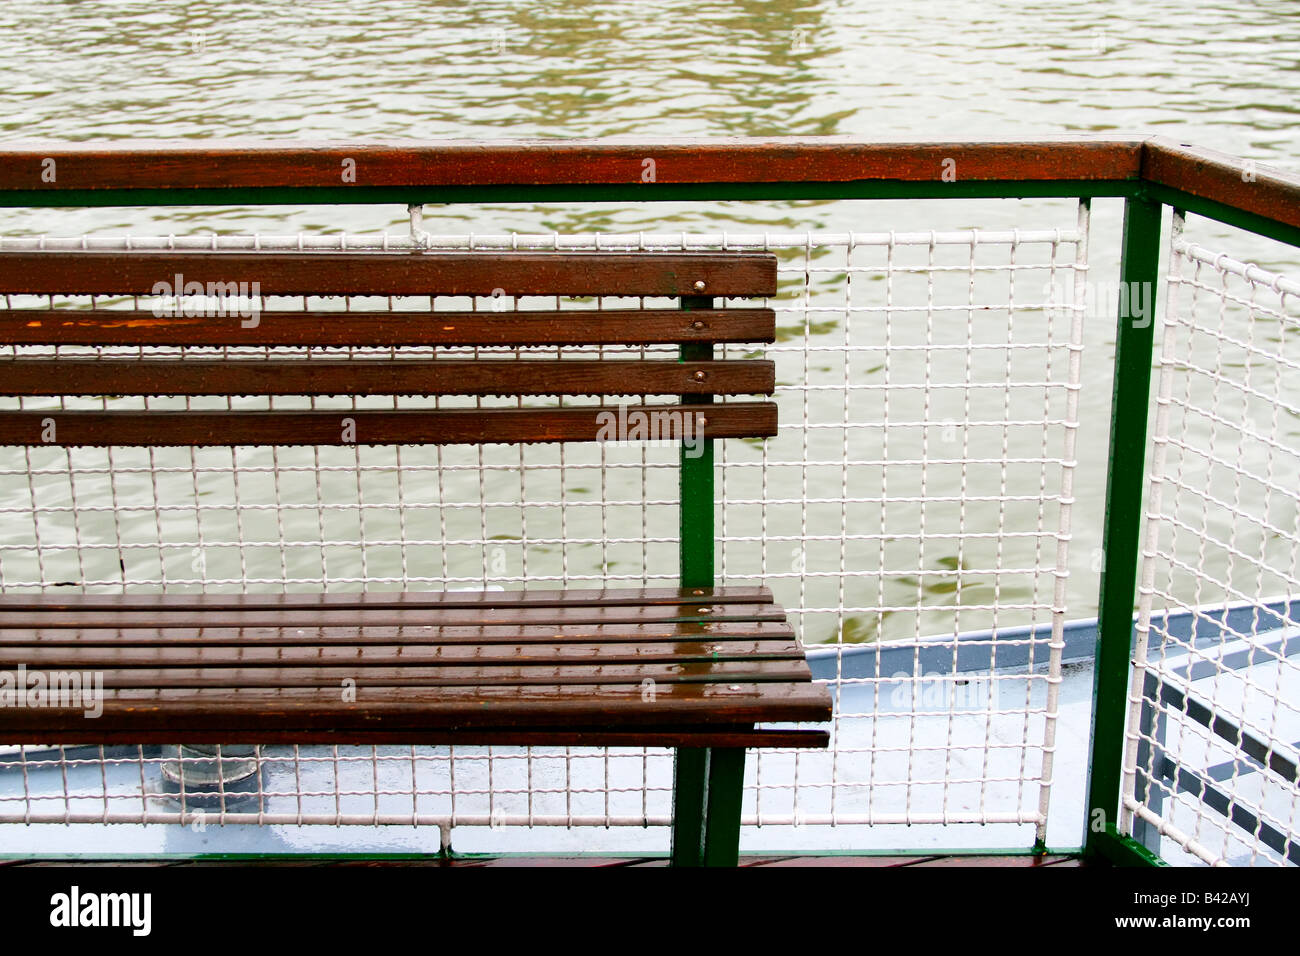 Astonishing Wooden Bench In The Rain On A Trip Boat On Danube River Evergreenethics Interior Chair Design Evergreenethicsorg